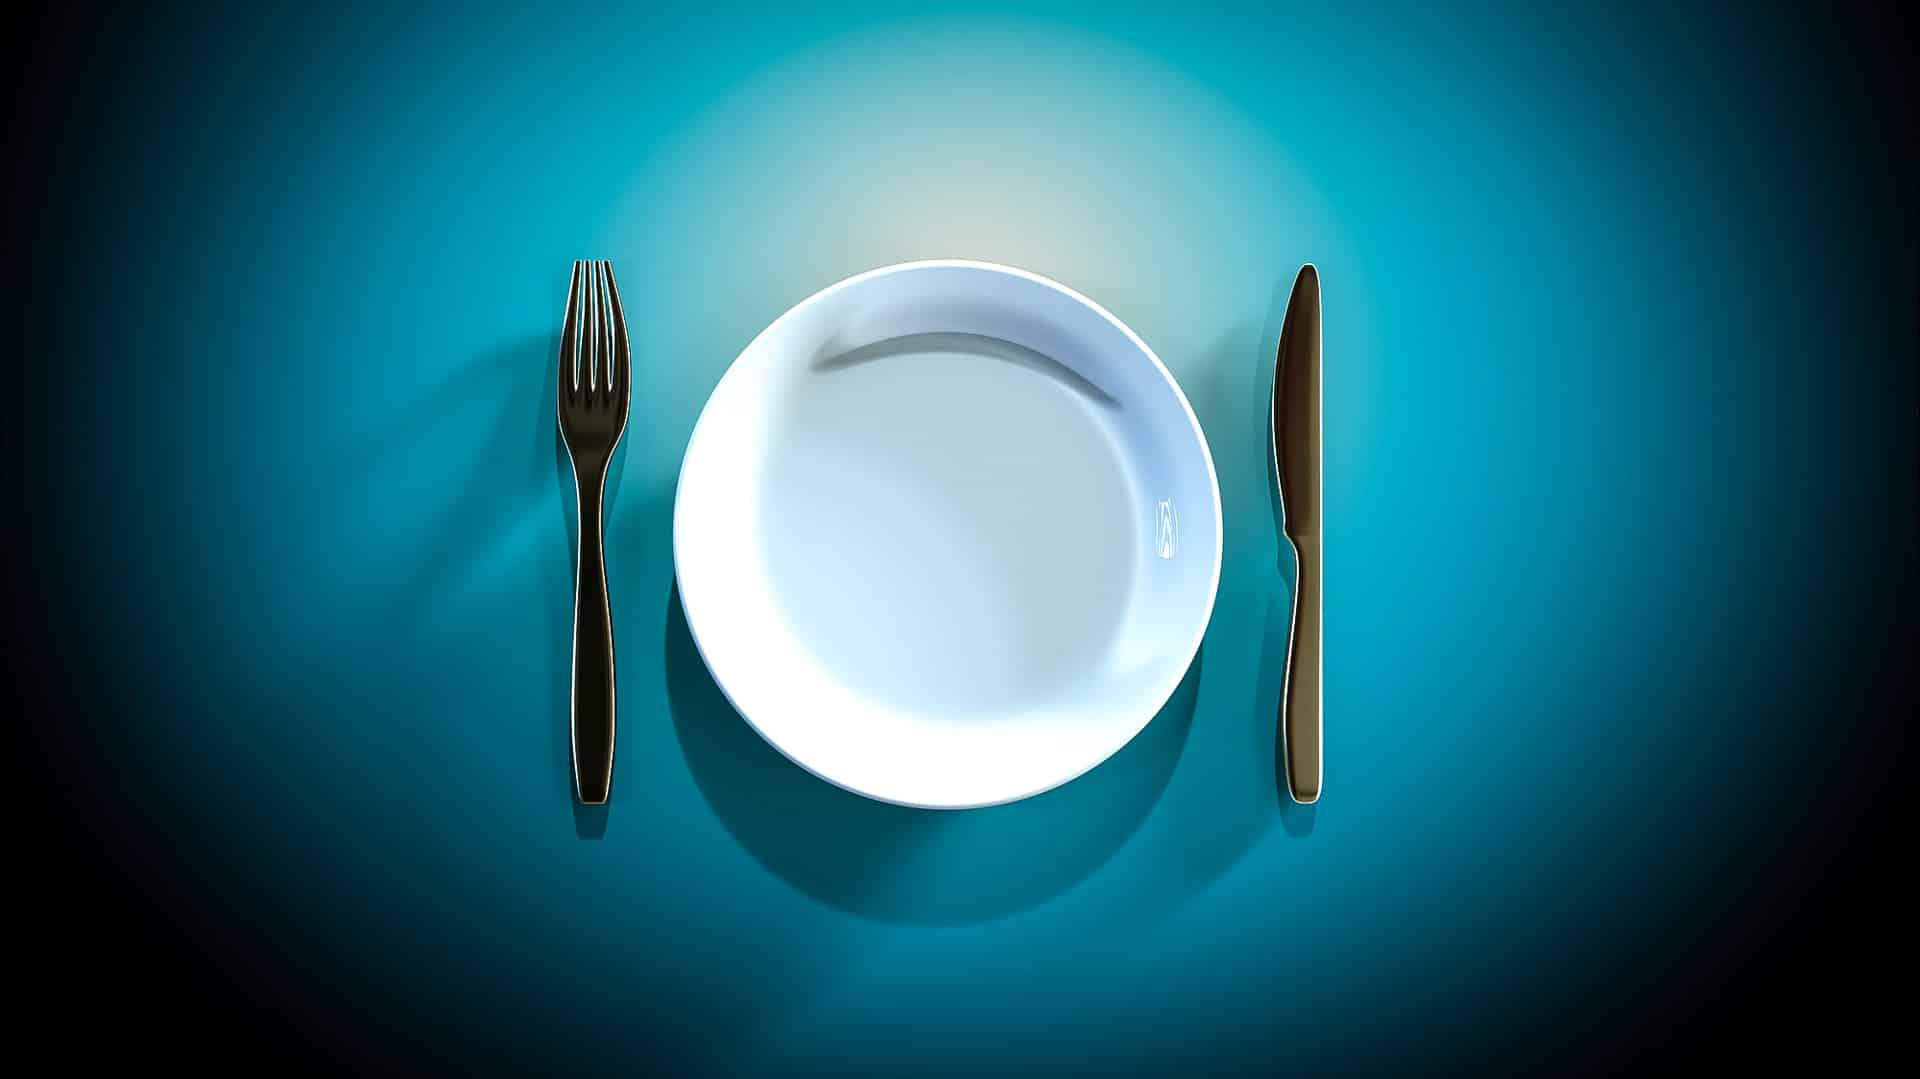 Intermittent Fasting Testosterone empty plate fasting